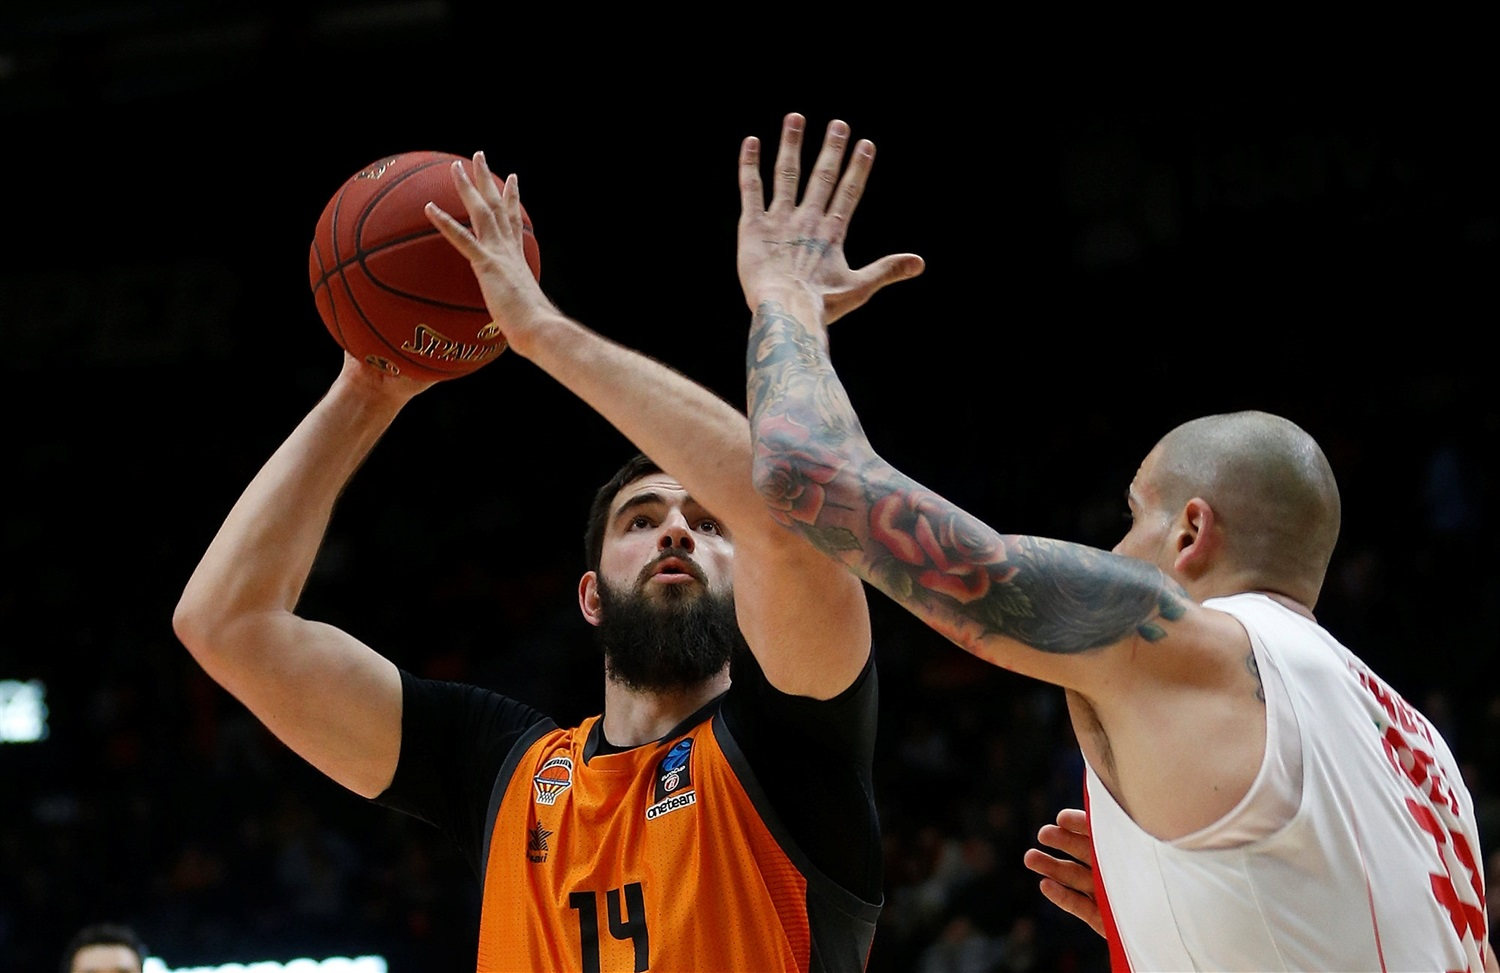 Bojan Dubljevic - Valencia Basket (photo Miguel Angel Polo - Valencia) - EC18